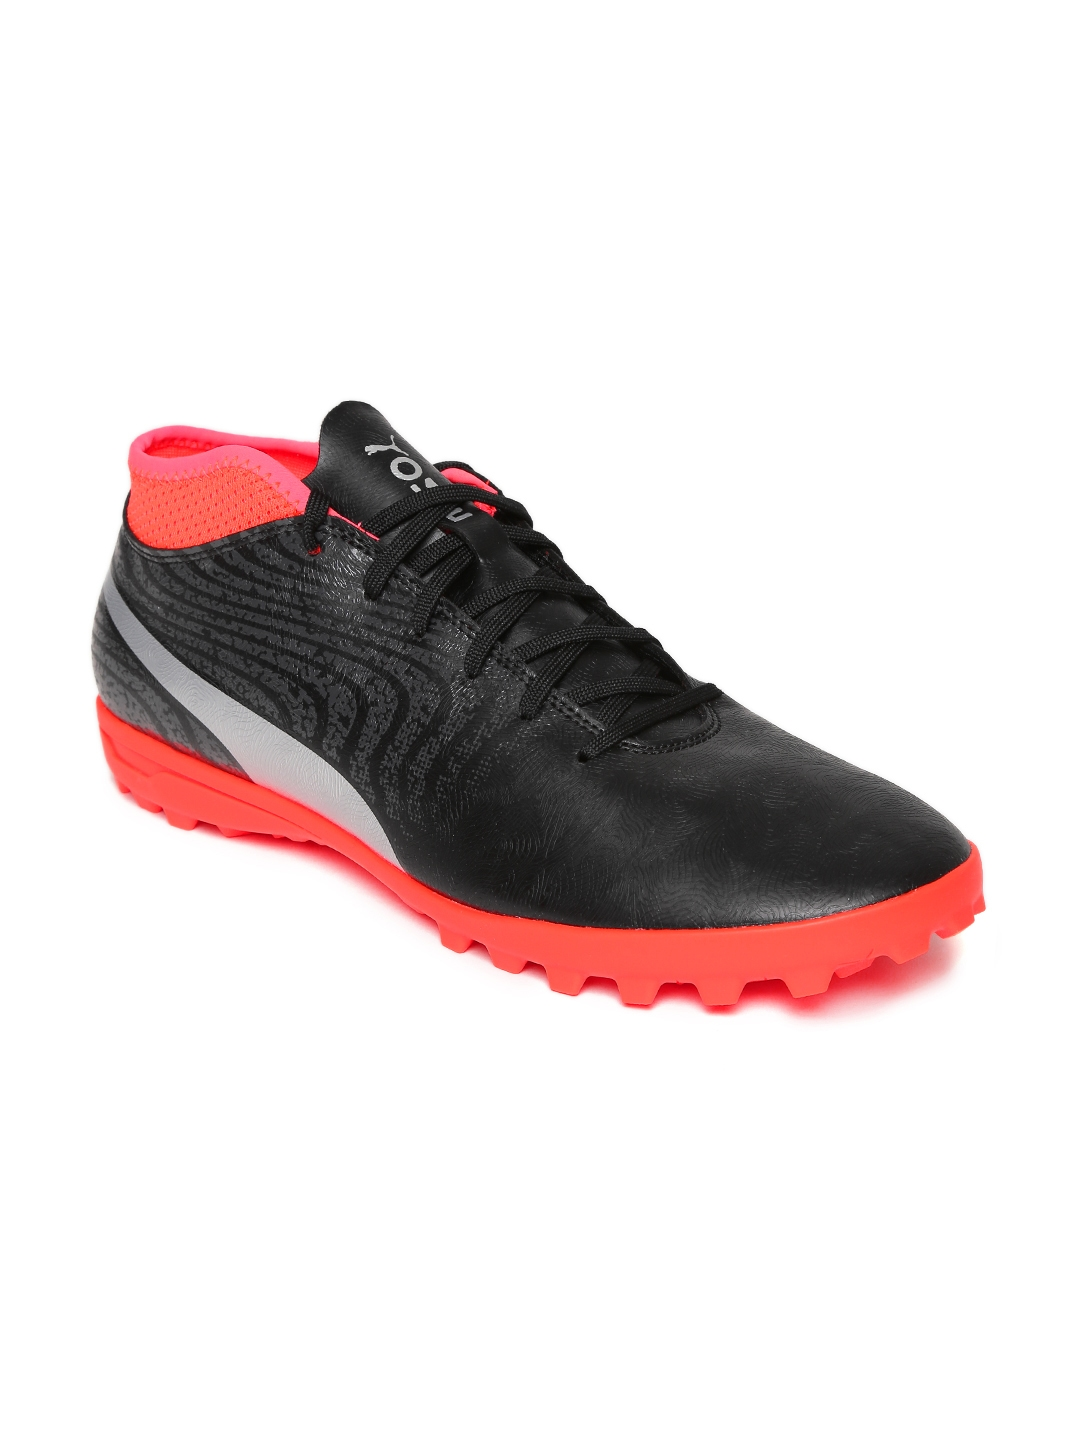 4fcee07dff4b Buy Puma Men Black One 18.4 Team Training Football Shoes - Sports ...